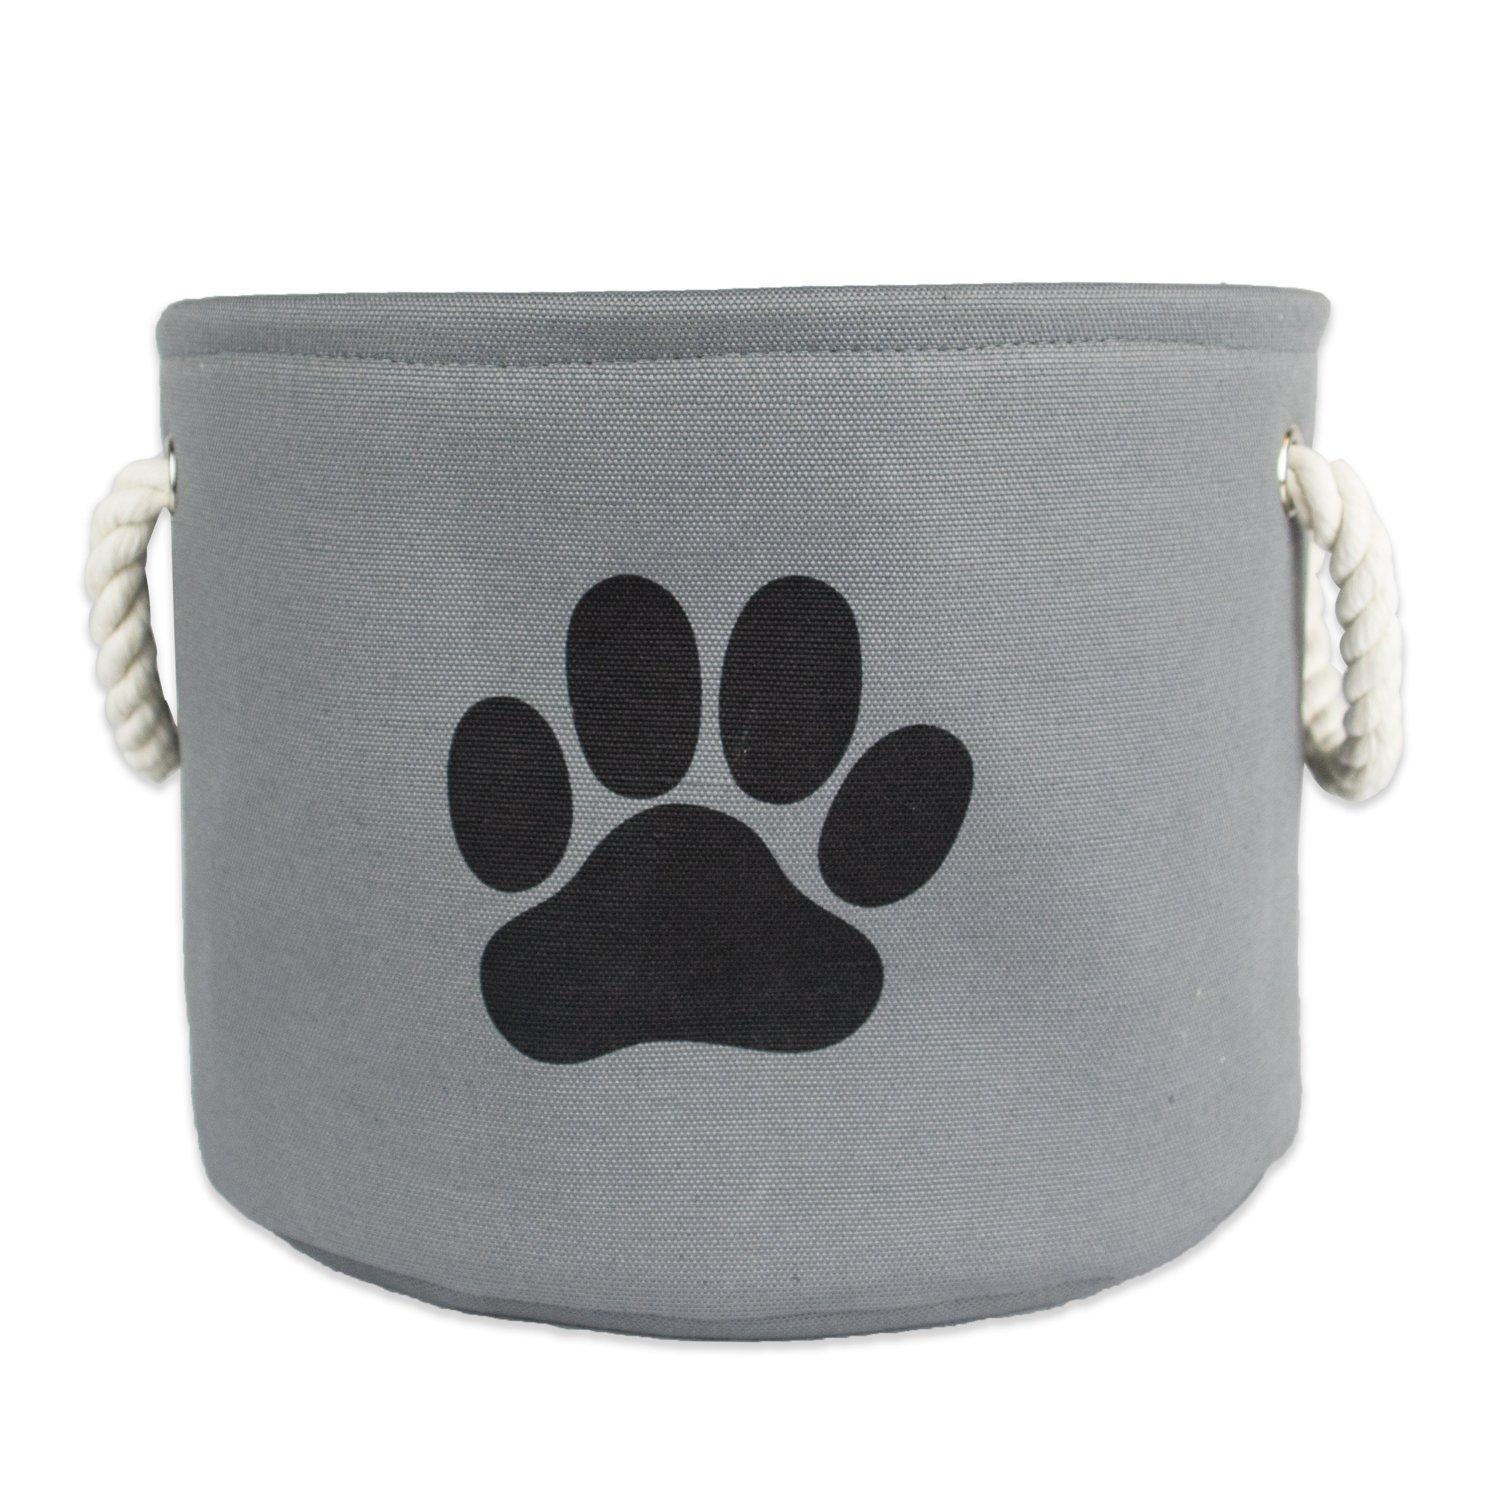 Bone Dry DII Medium Round Pet Toy and Accessory Storage Bin, 14.5''(Dia) x12(H), Collapsible Organizer Storage Basket for Home Décor, Pet Toy, Blankets, Leashes and Food-Gray with Black Paw